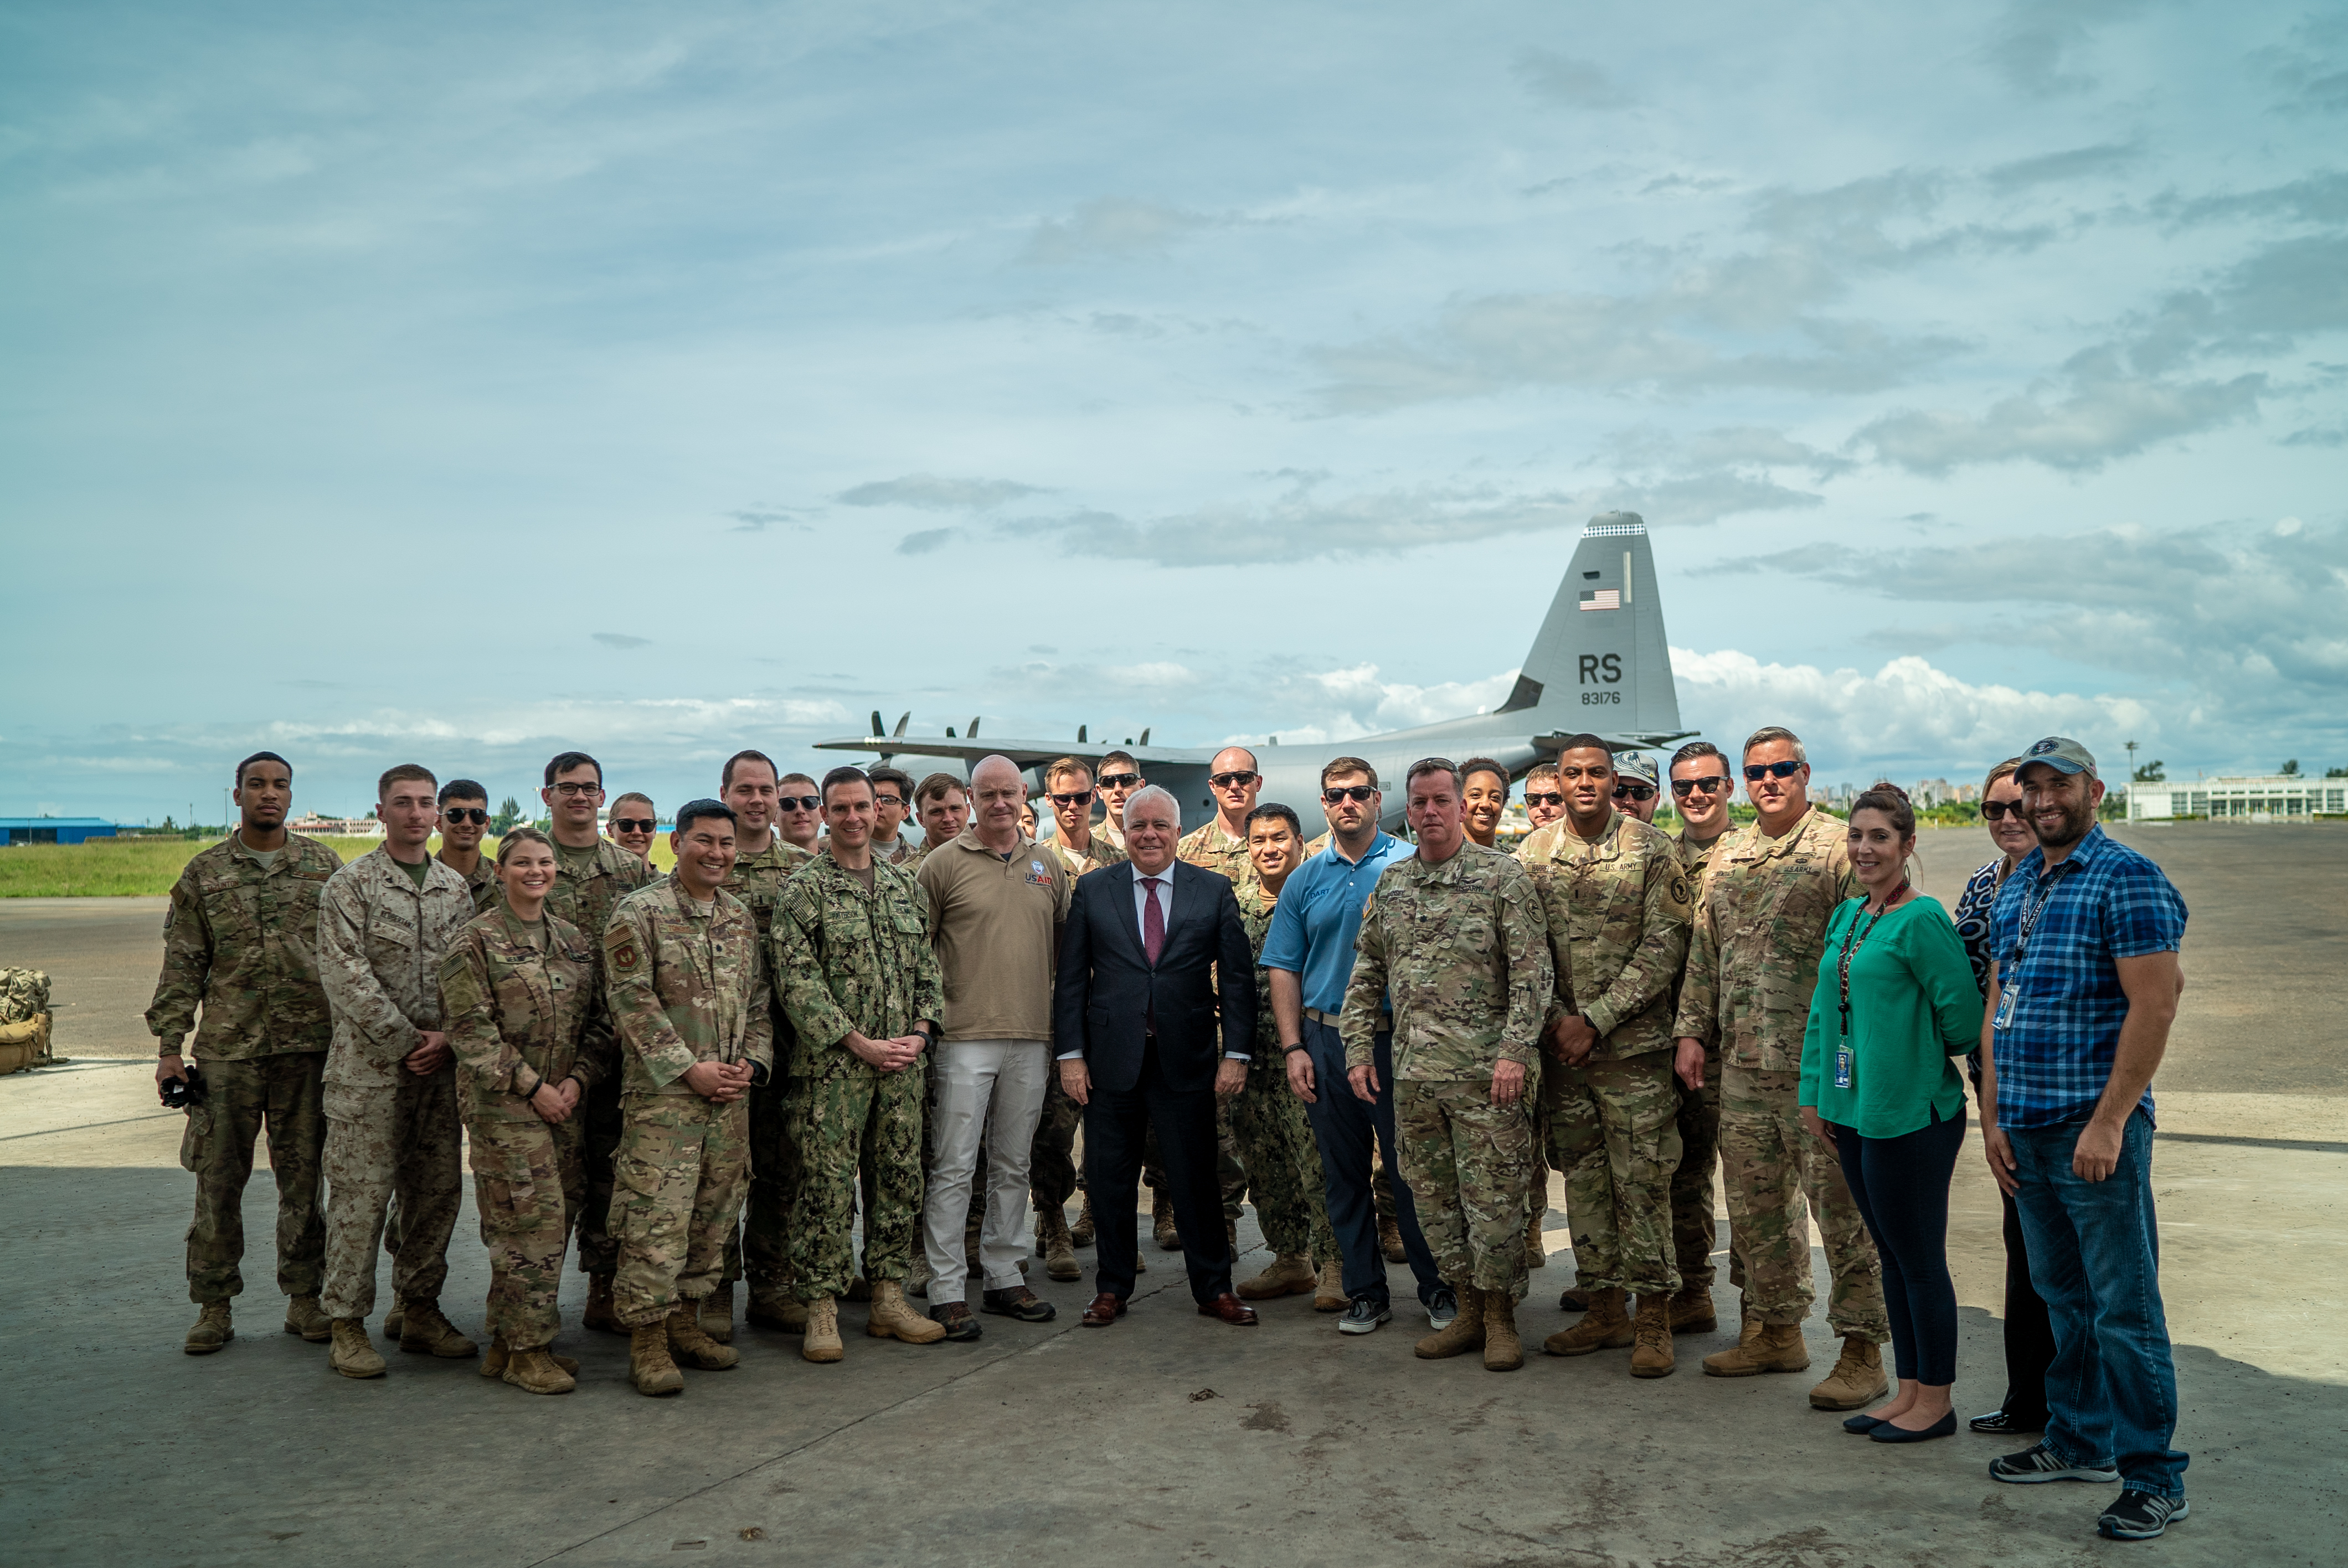 Dennis Walter Hearne, U.S. Ambassador to the Republic of Mozambique, poses for a photo with U.S. service members assigned to Combined Joint Task Force-Horn of Africa (CJTF-HOA) in Maputo, Mozambique, April 11, 2019. CJTF-HOA led U.S. Department of Defense Cyclone Idai relief efforts in support of U.S. Agency for International Development's (USAID) Disaster Assistance Response Team. The task force helped meet requirements identified by USAID assessment teams and humanitarian organizations working in the region by providing logistics support and manpower to USAID at the request of the Government of   the Republic of Mozambique. (U.S. Air Force photo by Tech. Sgt. Thomas Grimes)